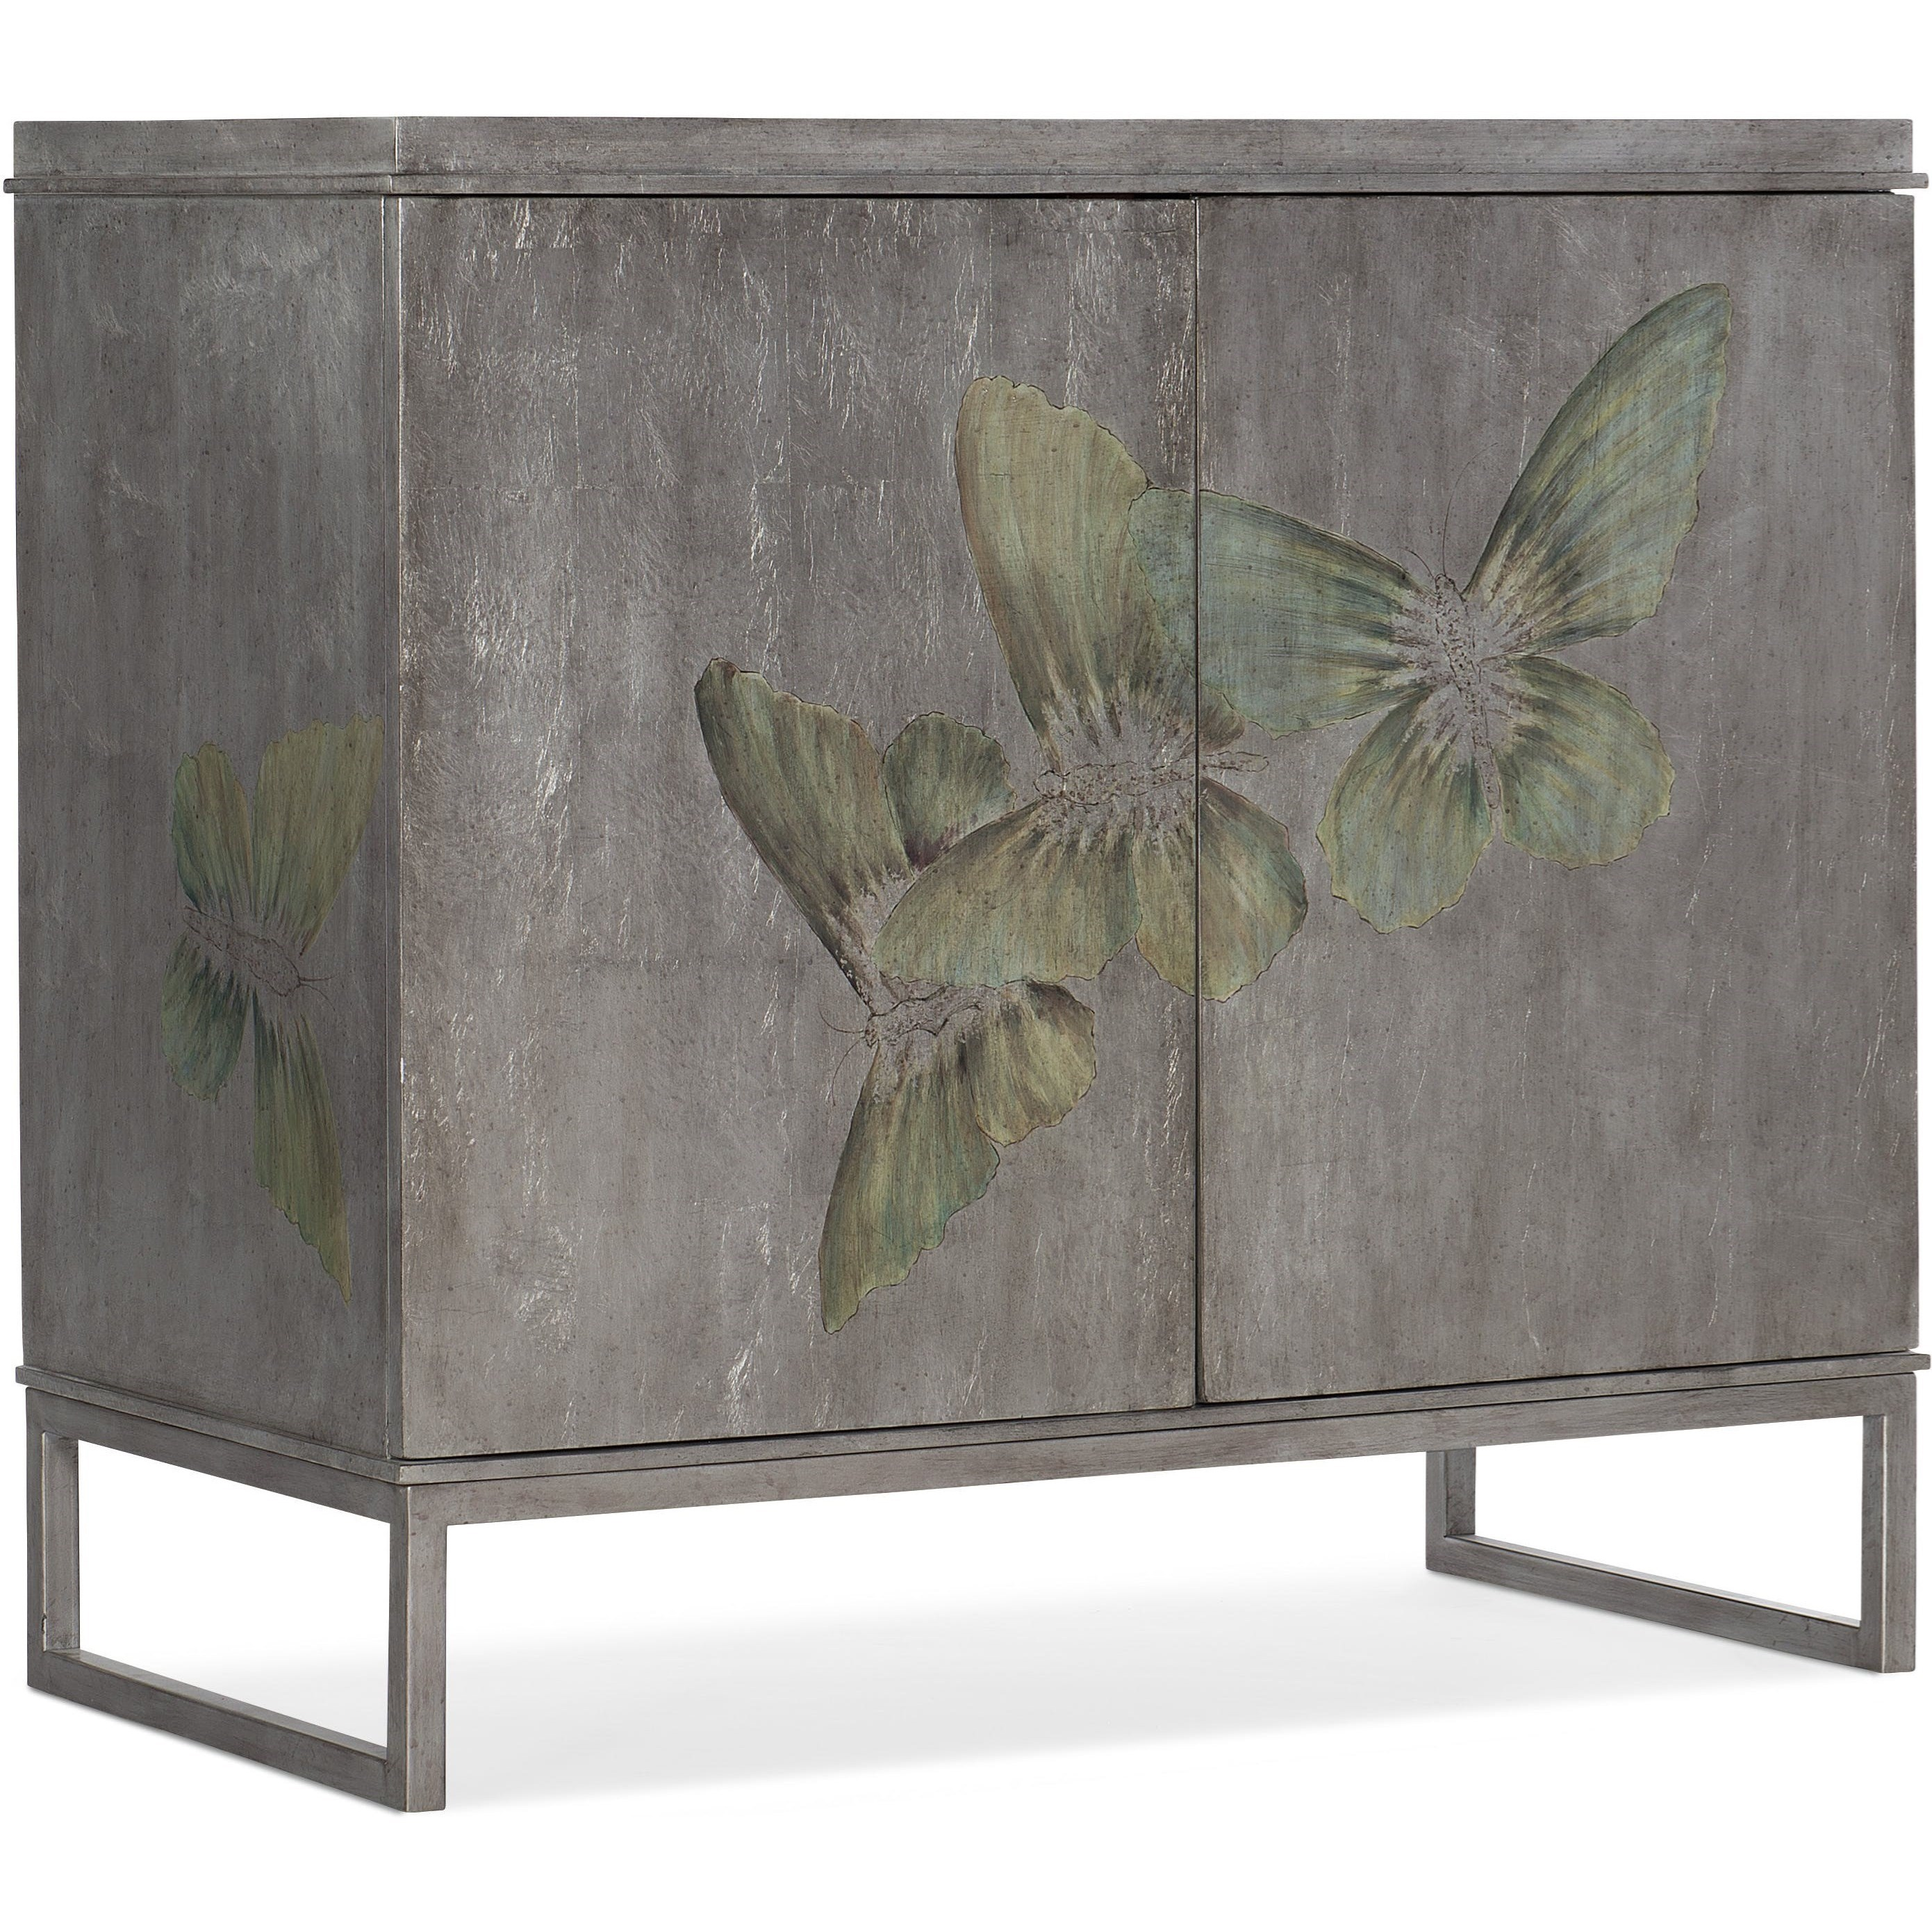 Living Room Accents 2-Door Accent Cabinet by Hooker Furniture at Fashion Furniture